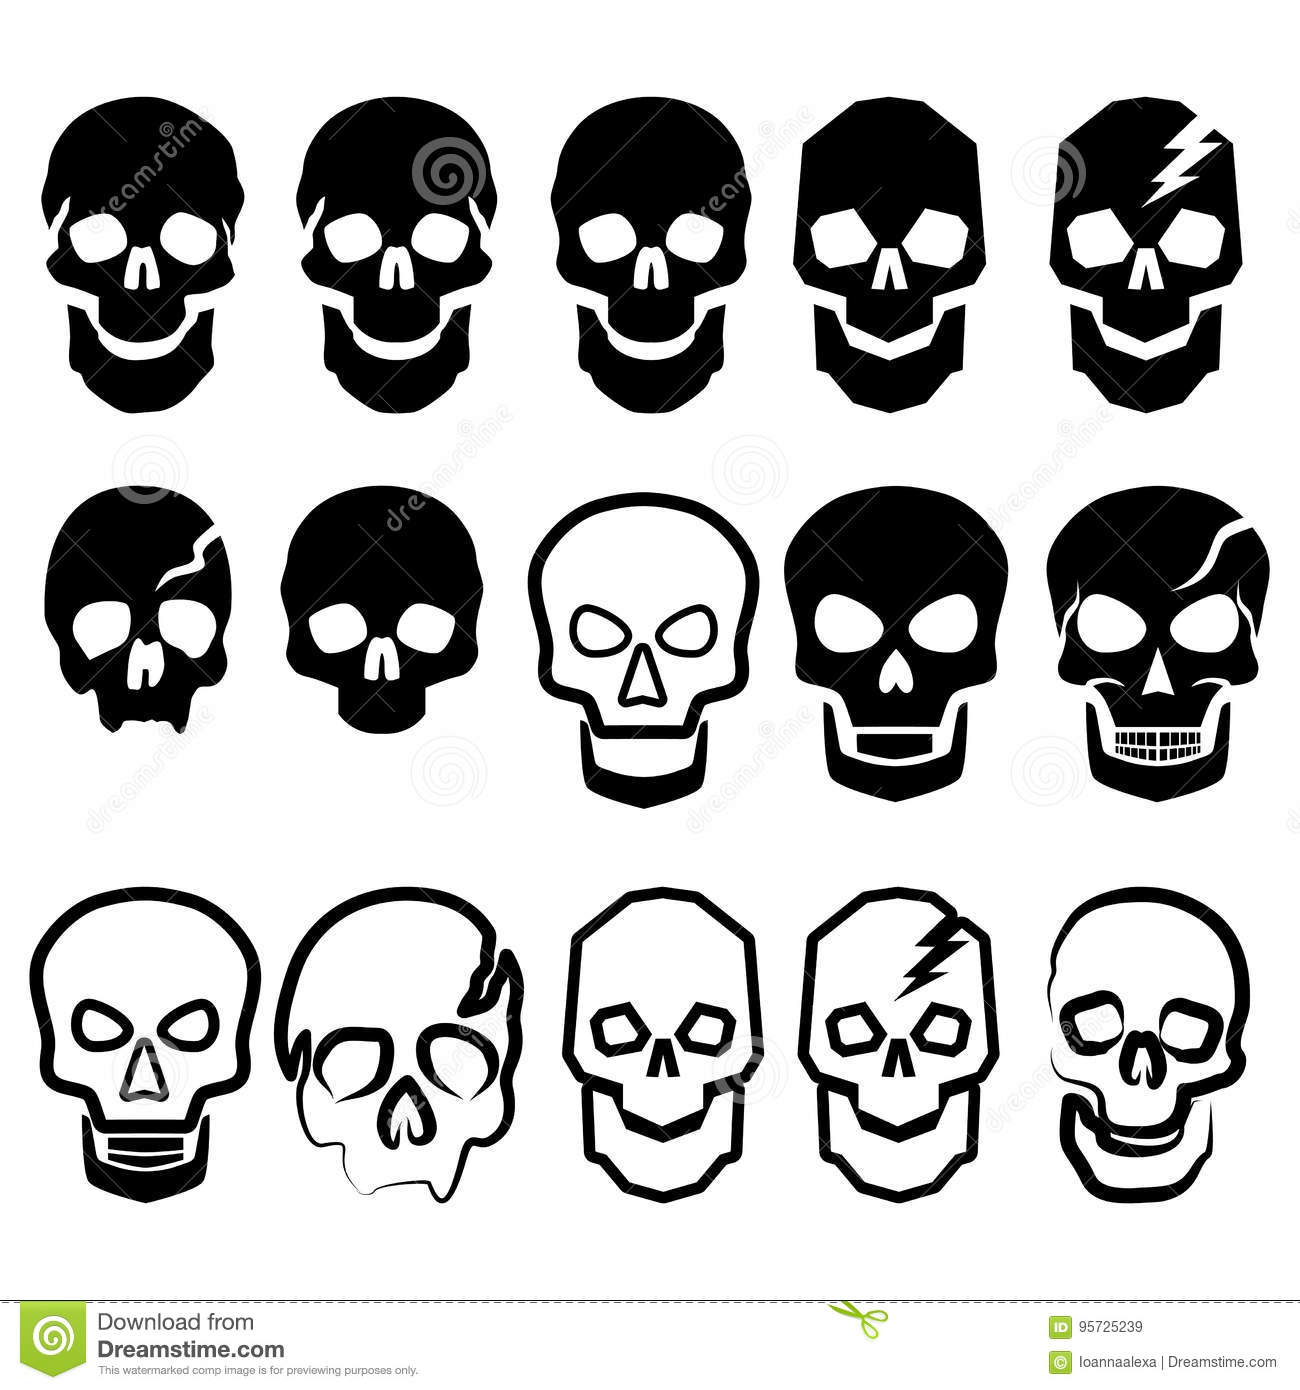 A set of black and white simple skulls